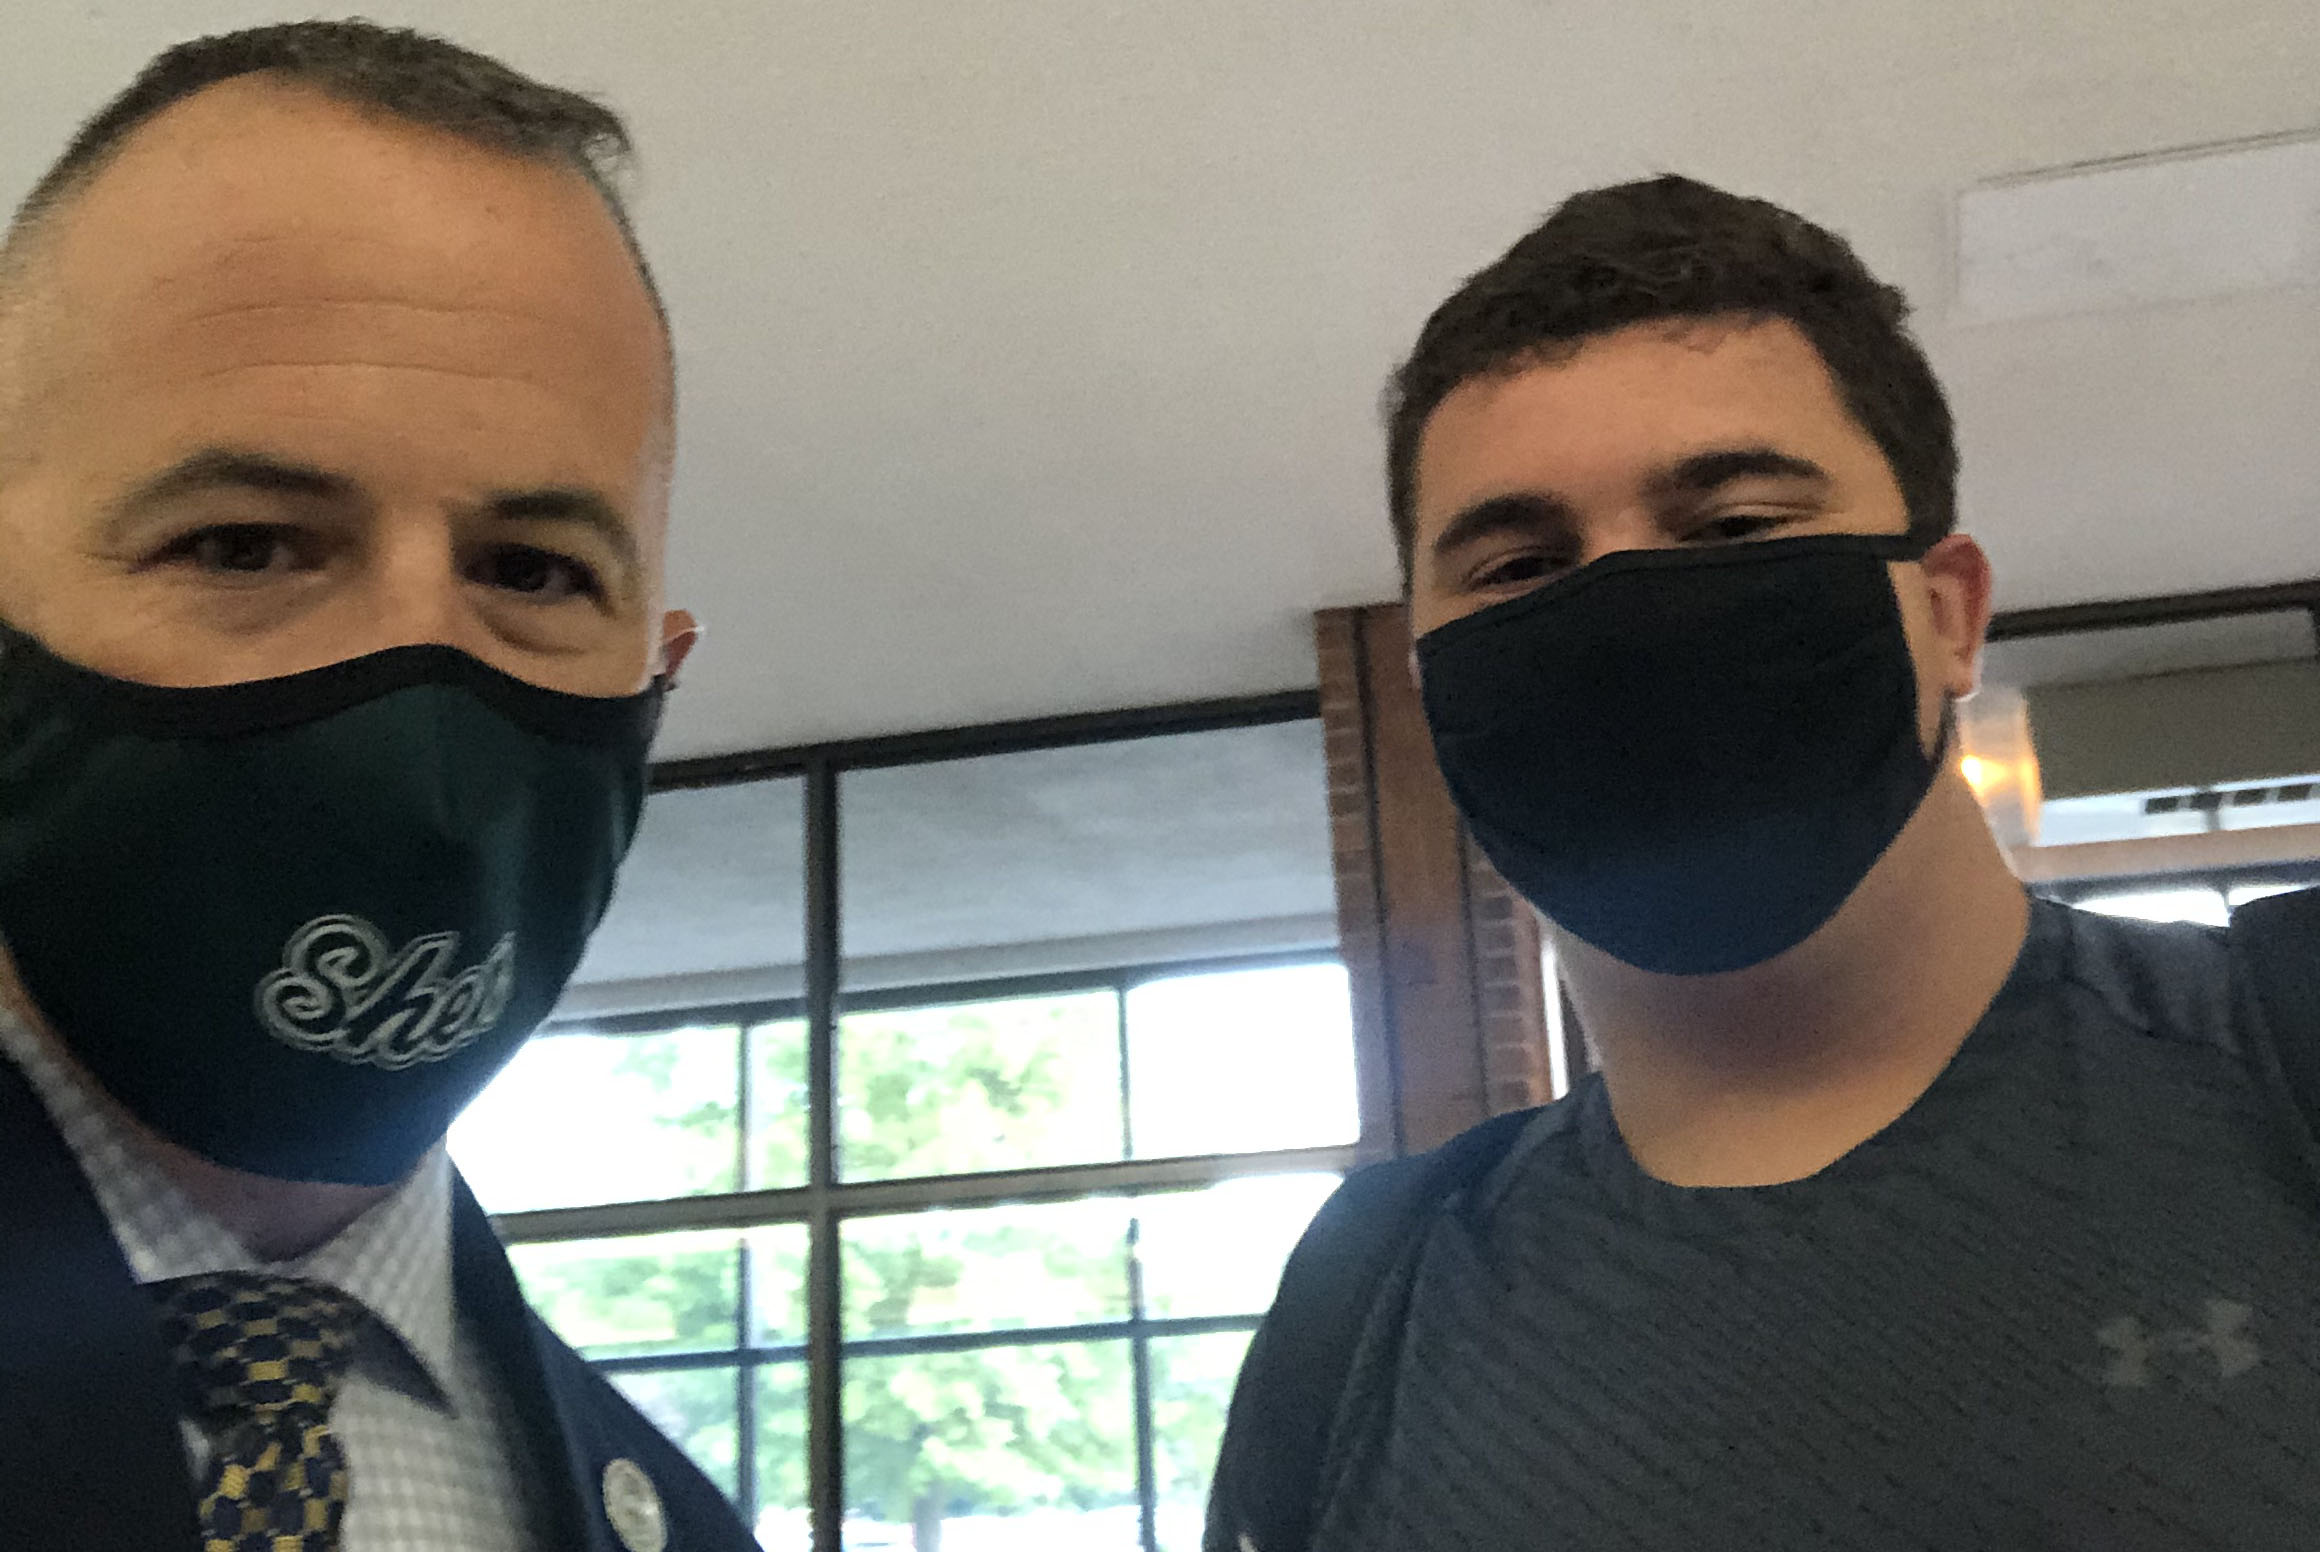 Mr. Agostinoni and a student in a selfie